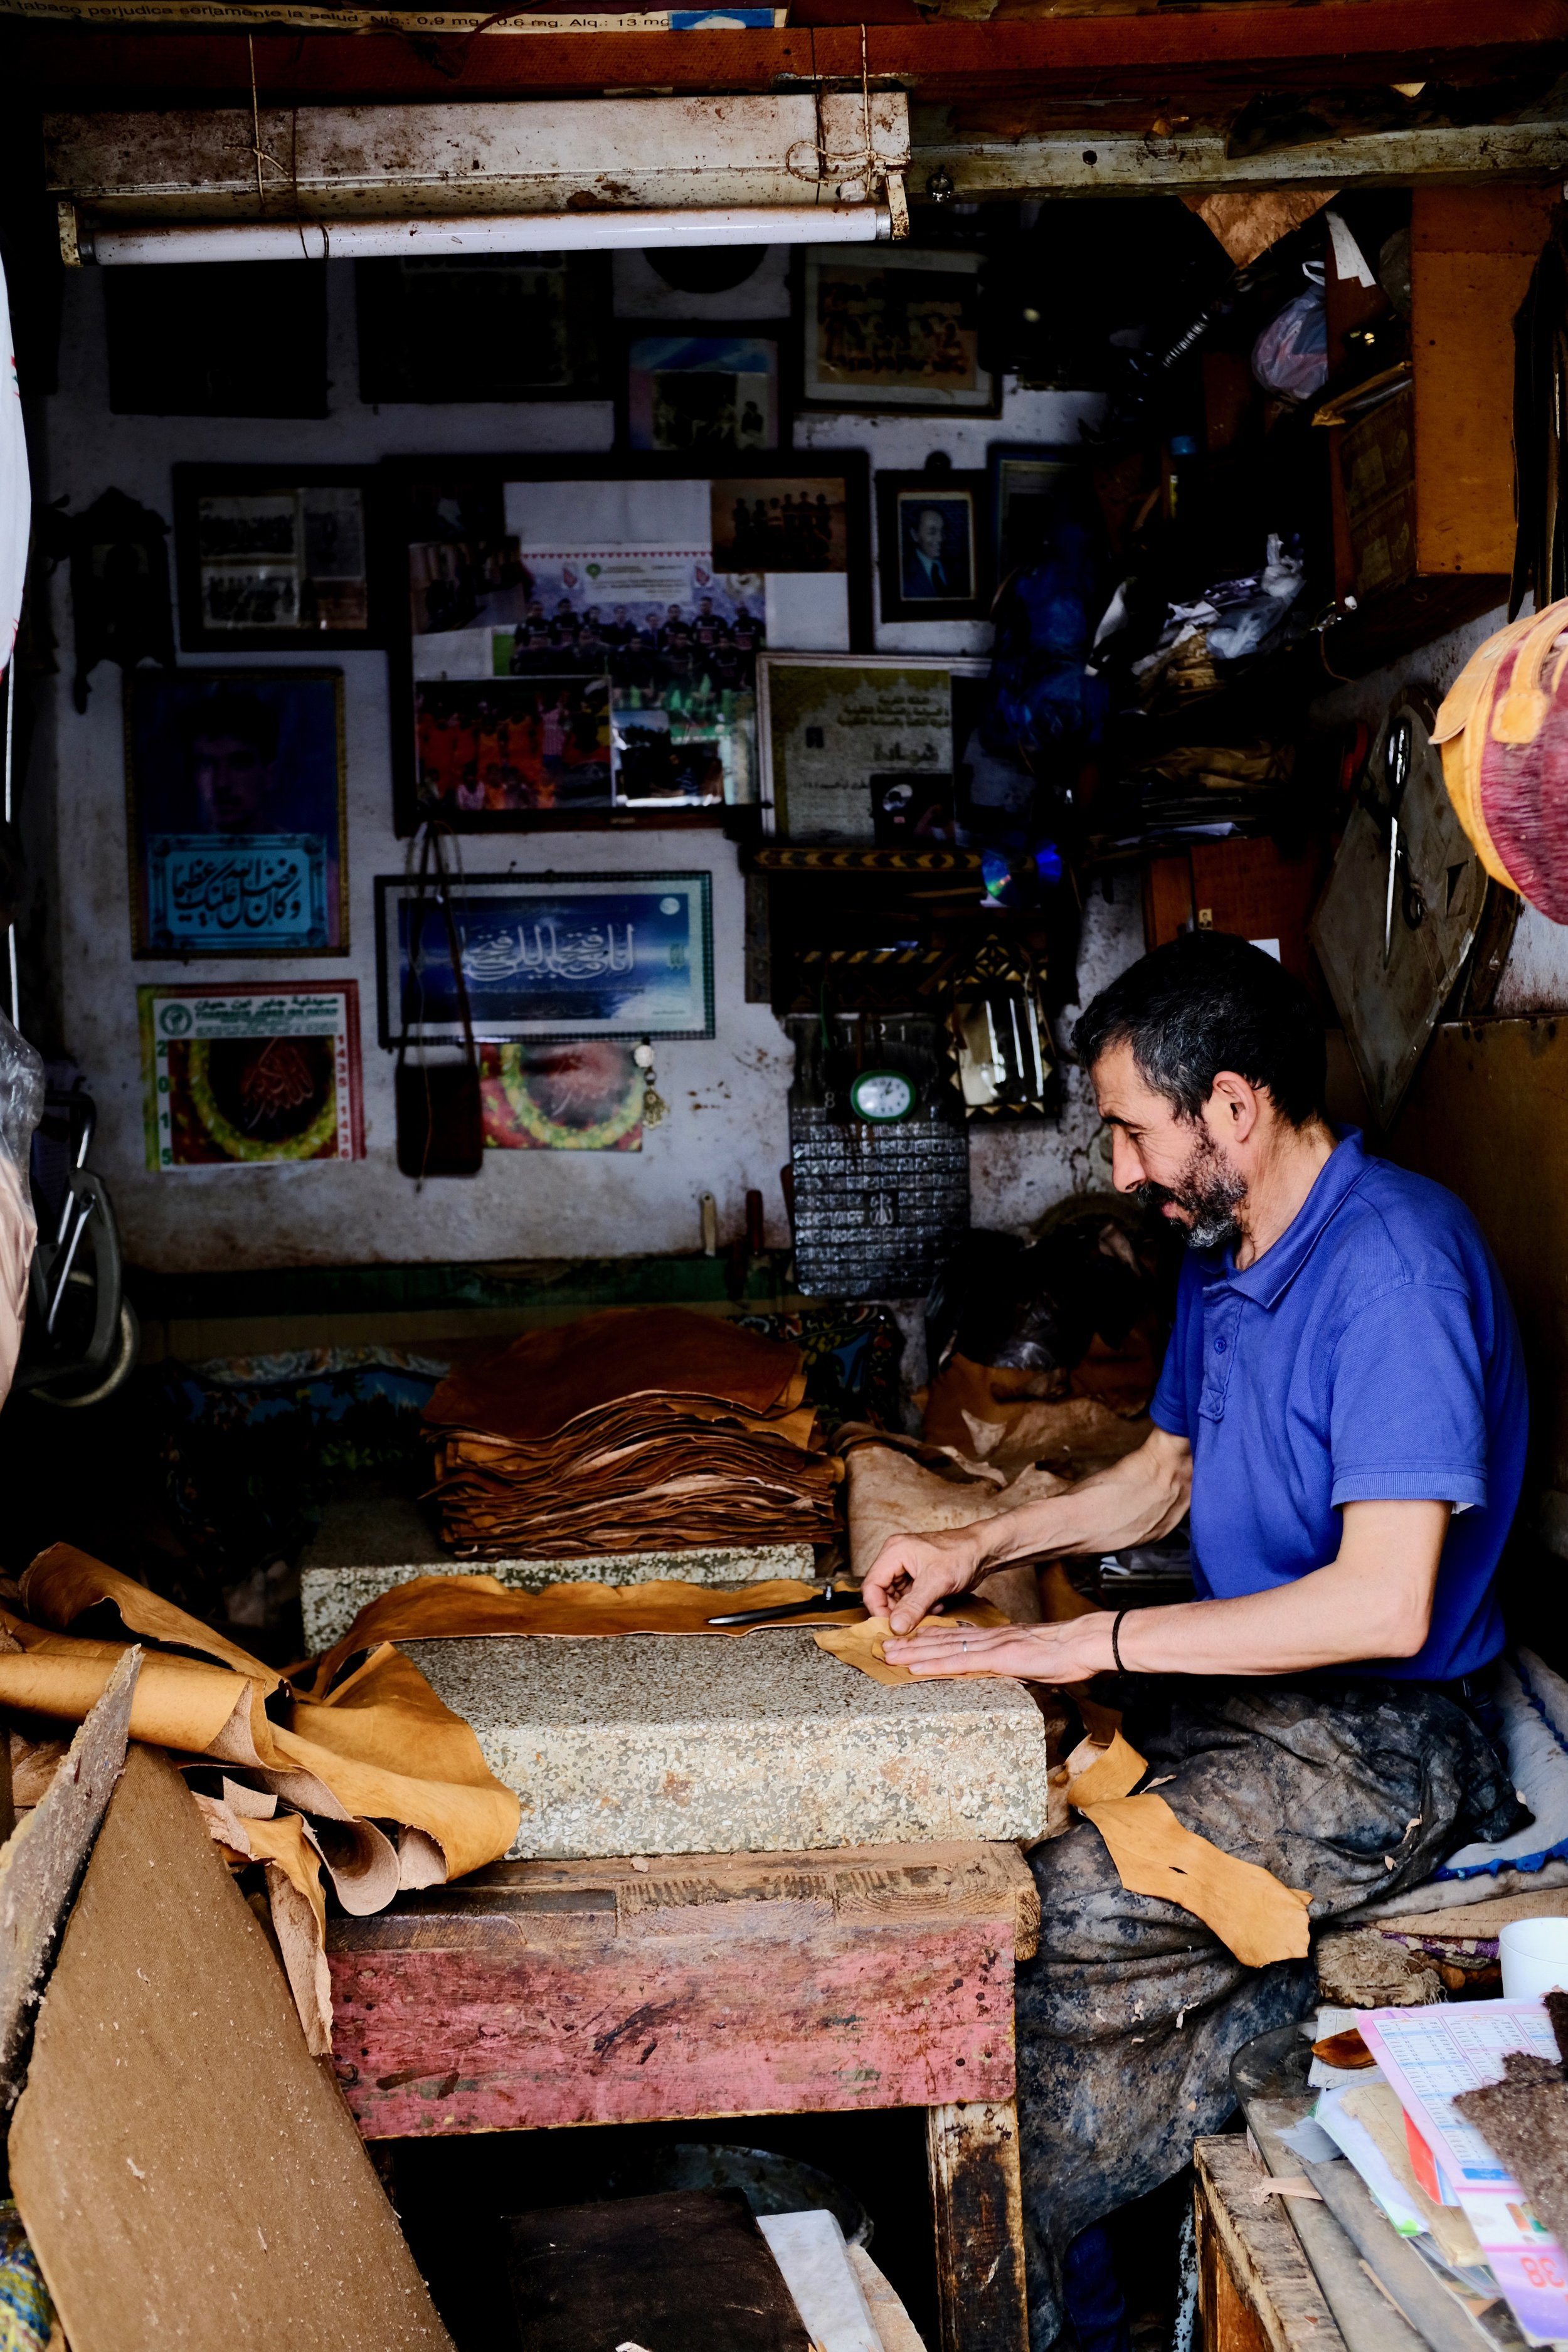 After the leather goes to the tanneries, it is used by local artisans to make beautiful leather products.